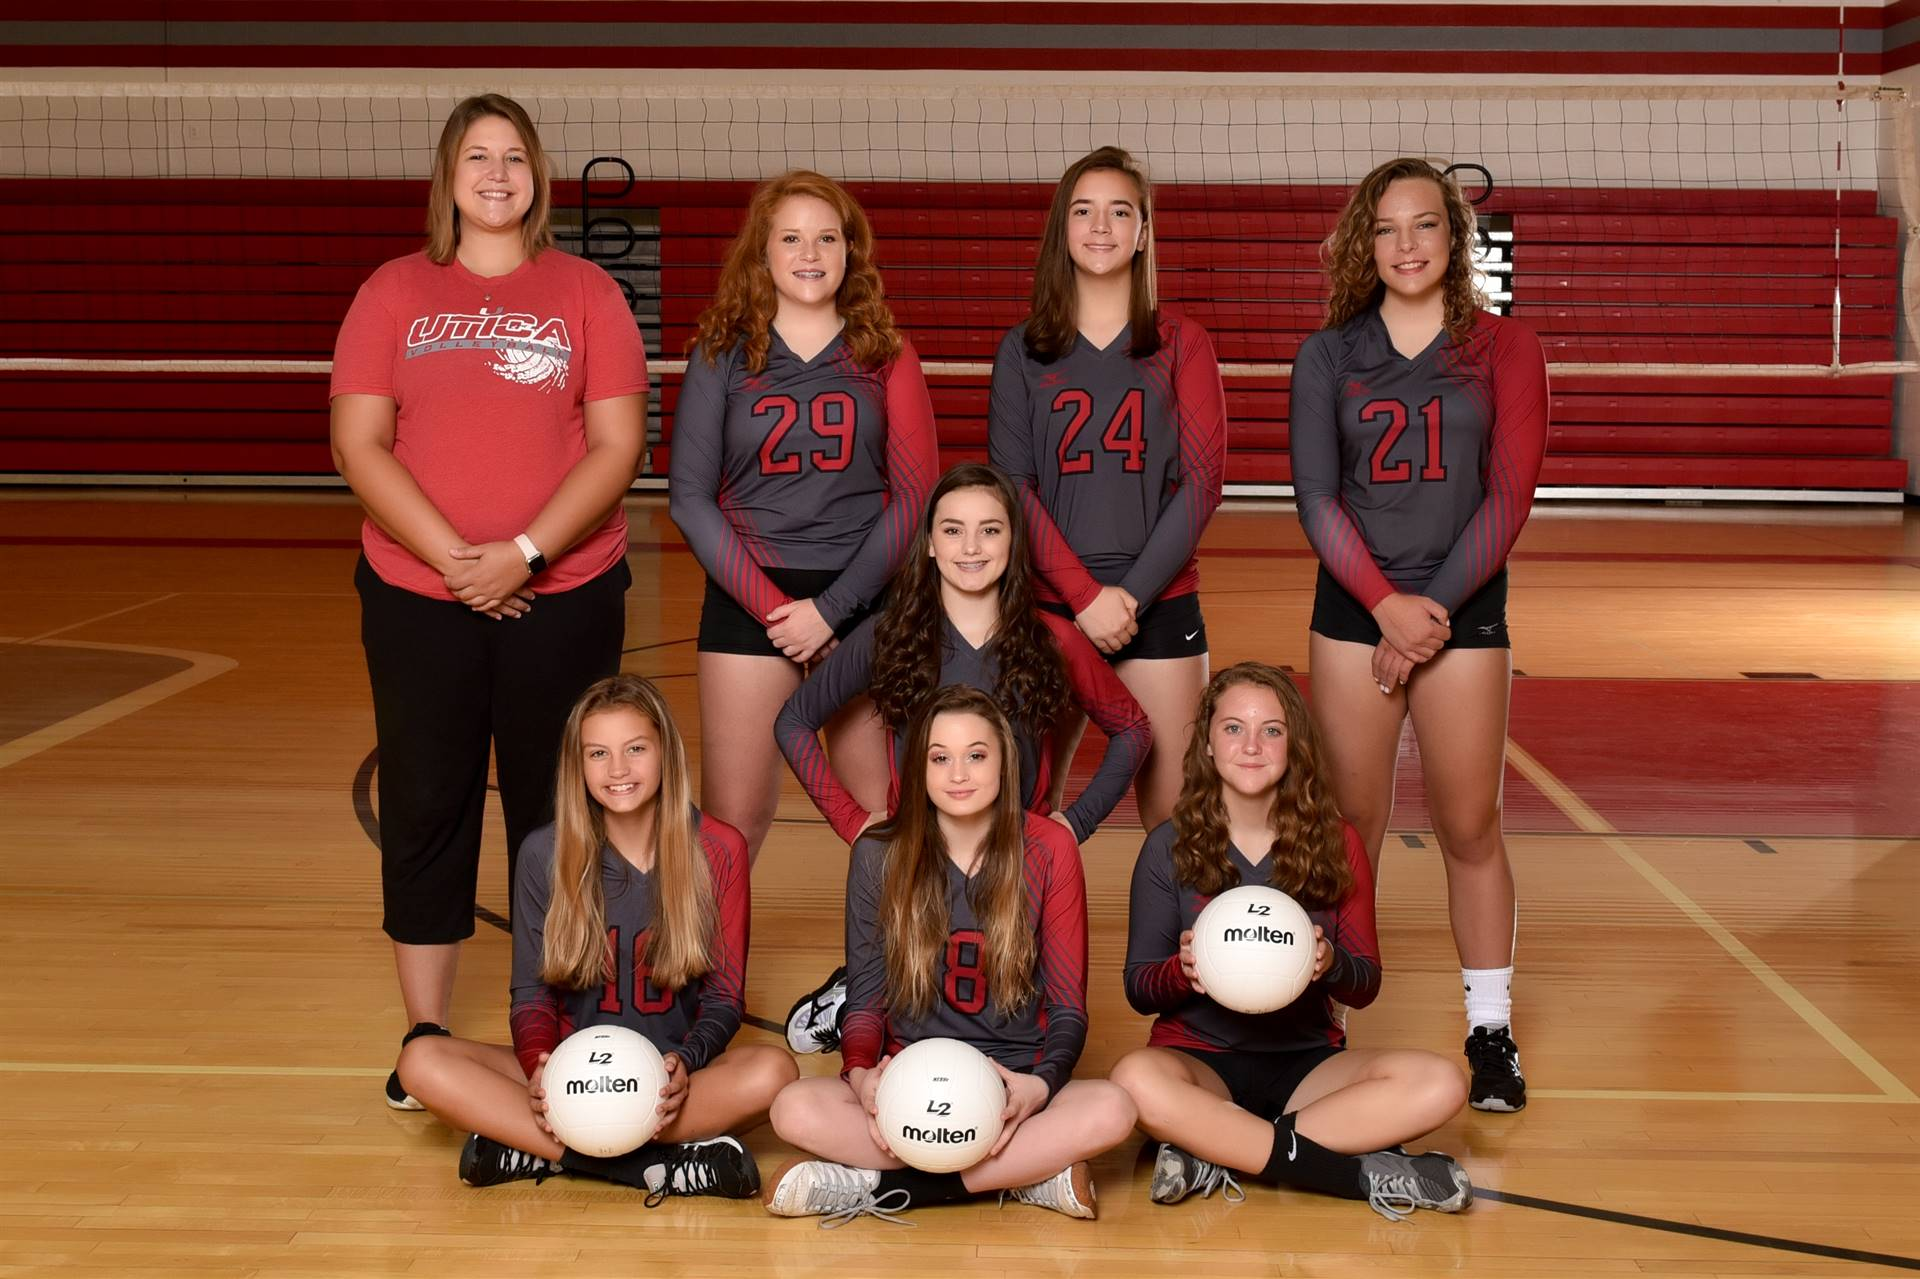 UHS Freshman Volleyball